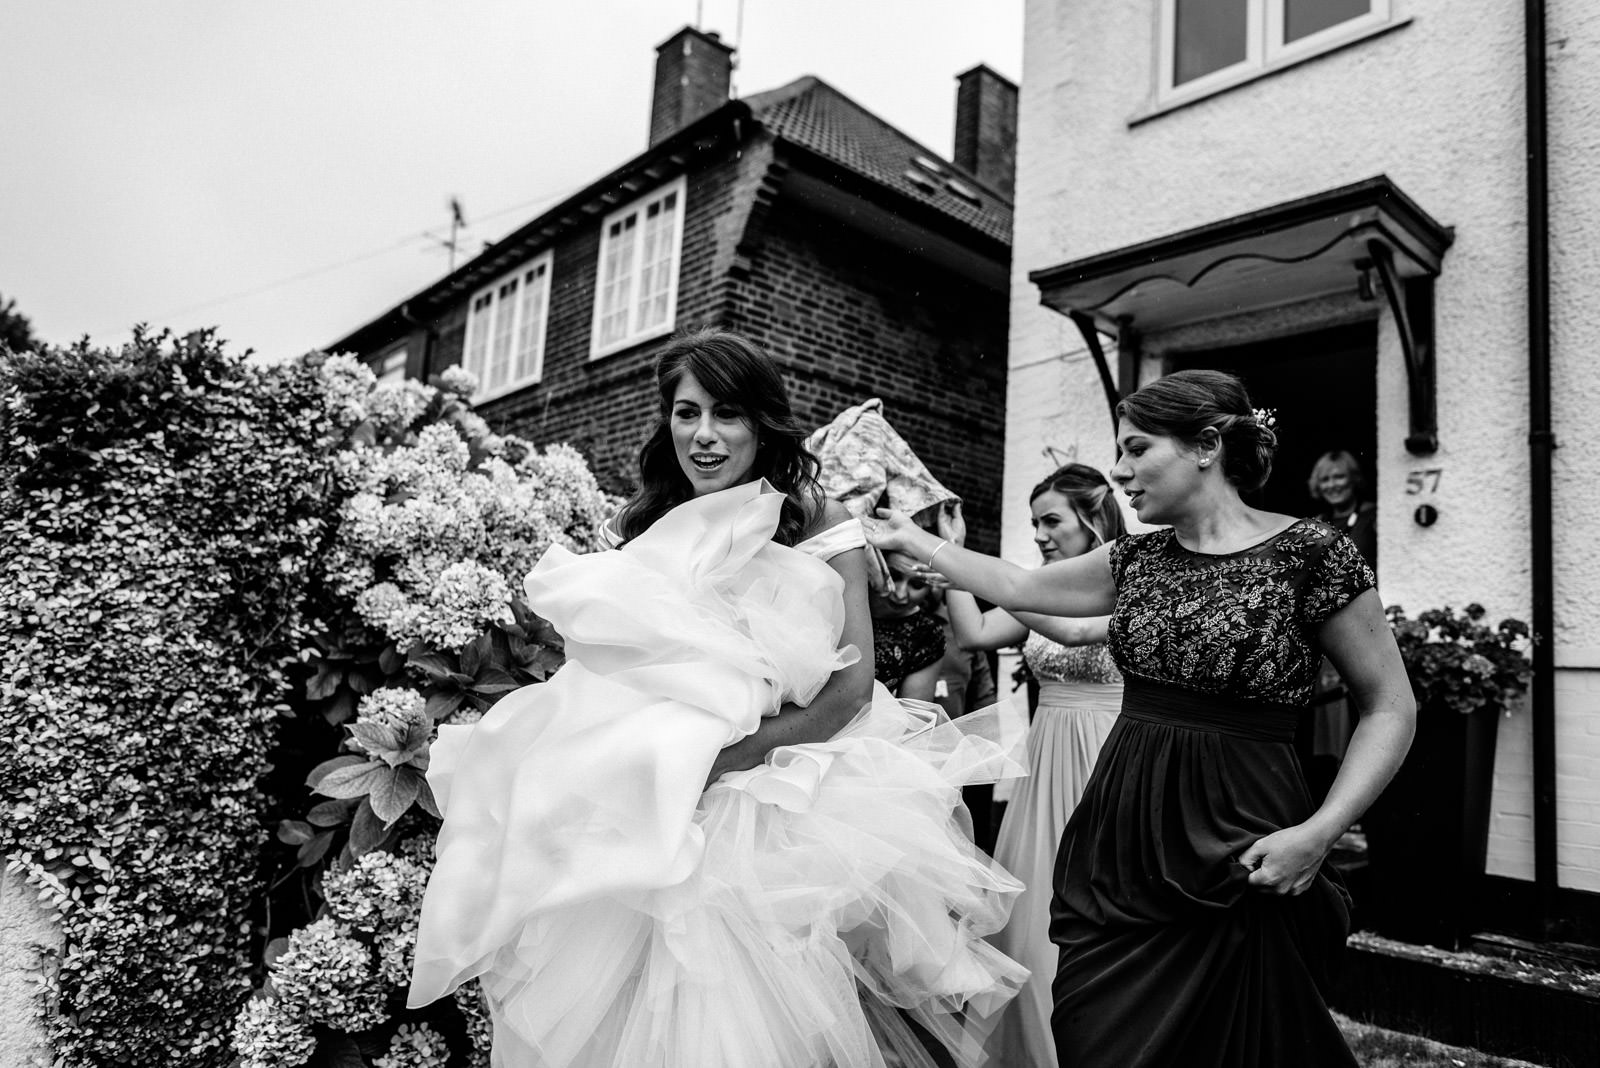 bridesmaids helping bride to the taxi in the rain